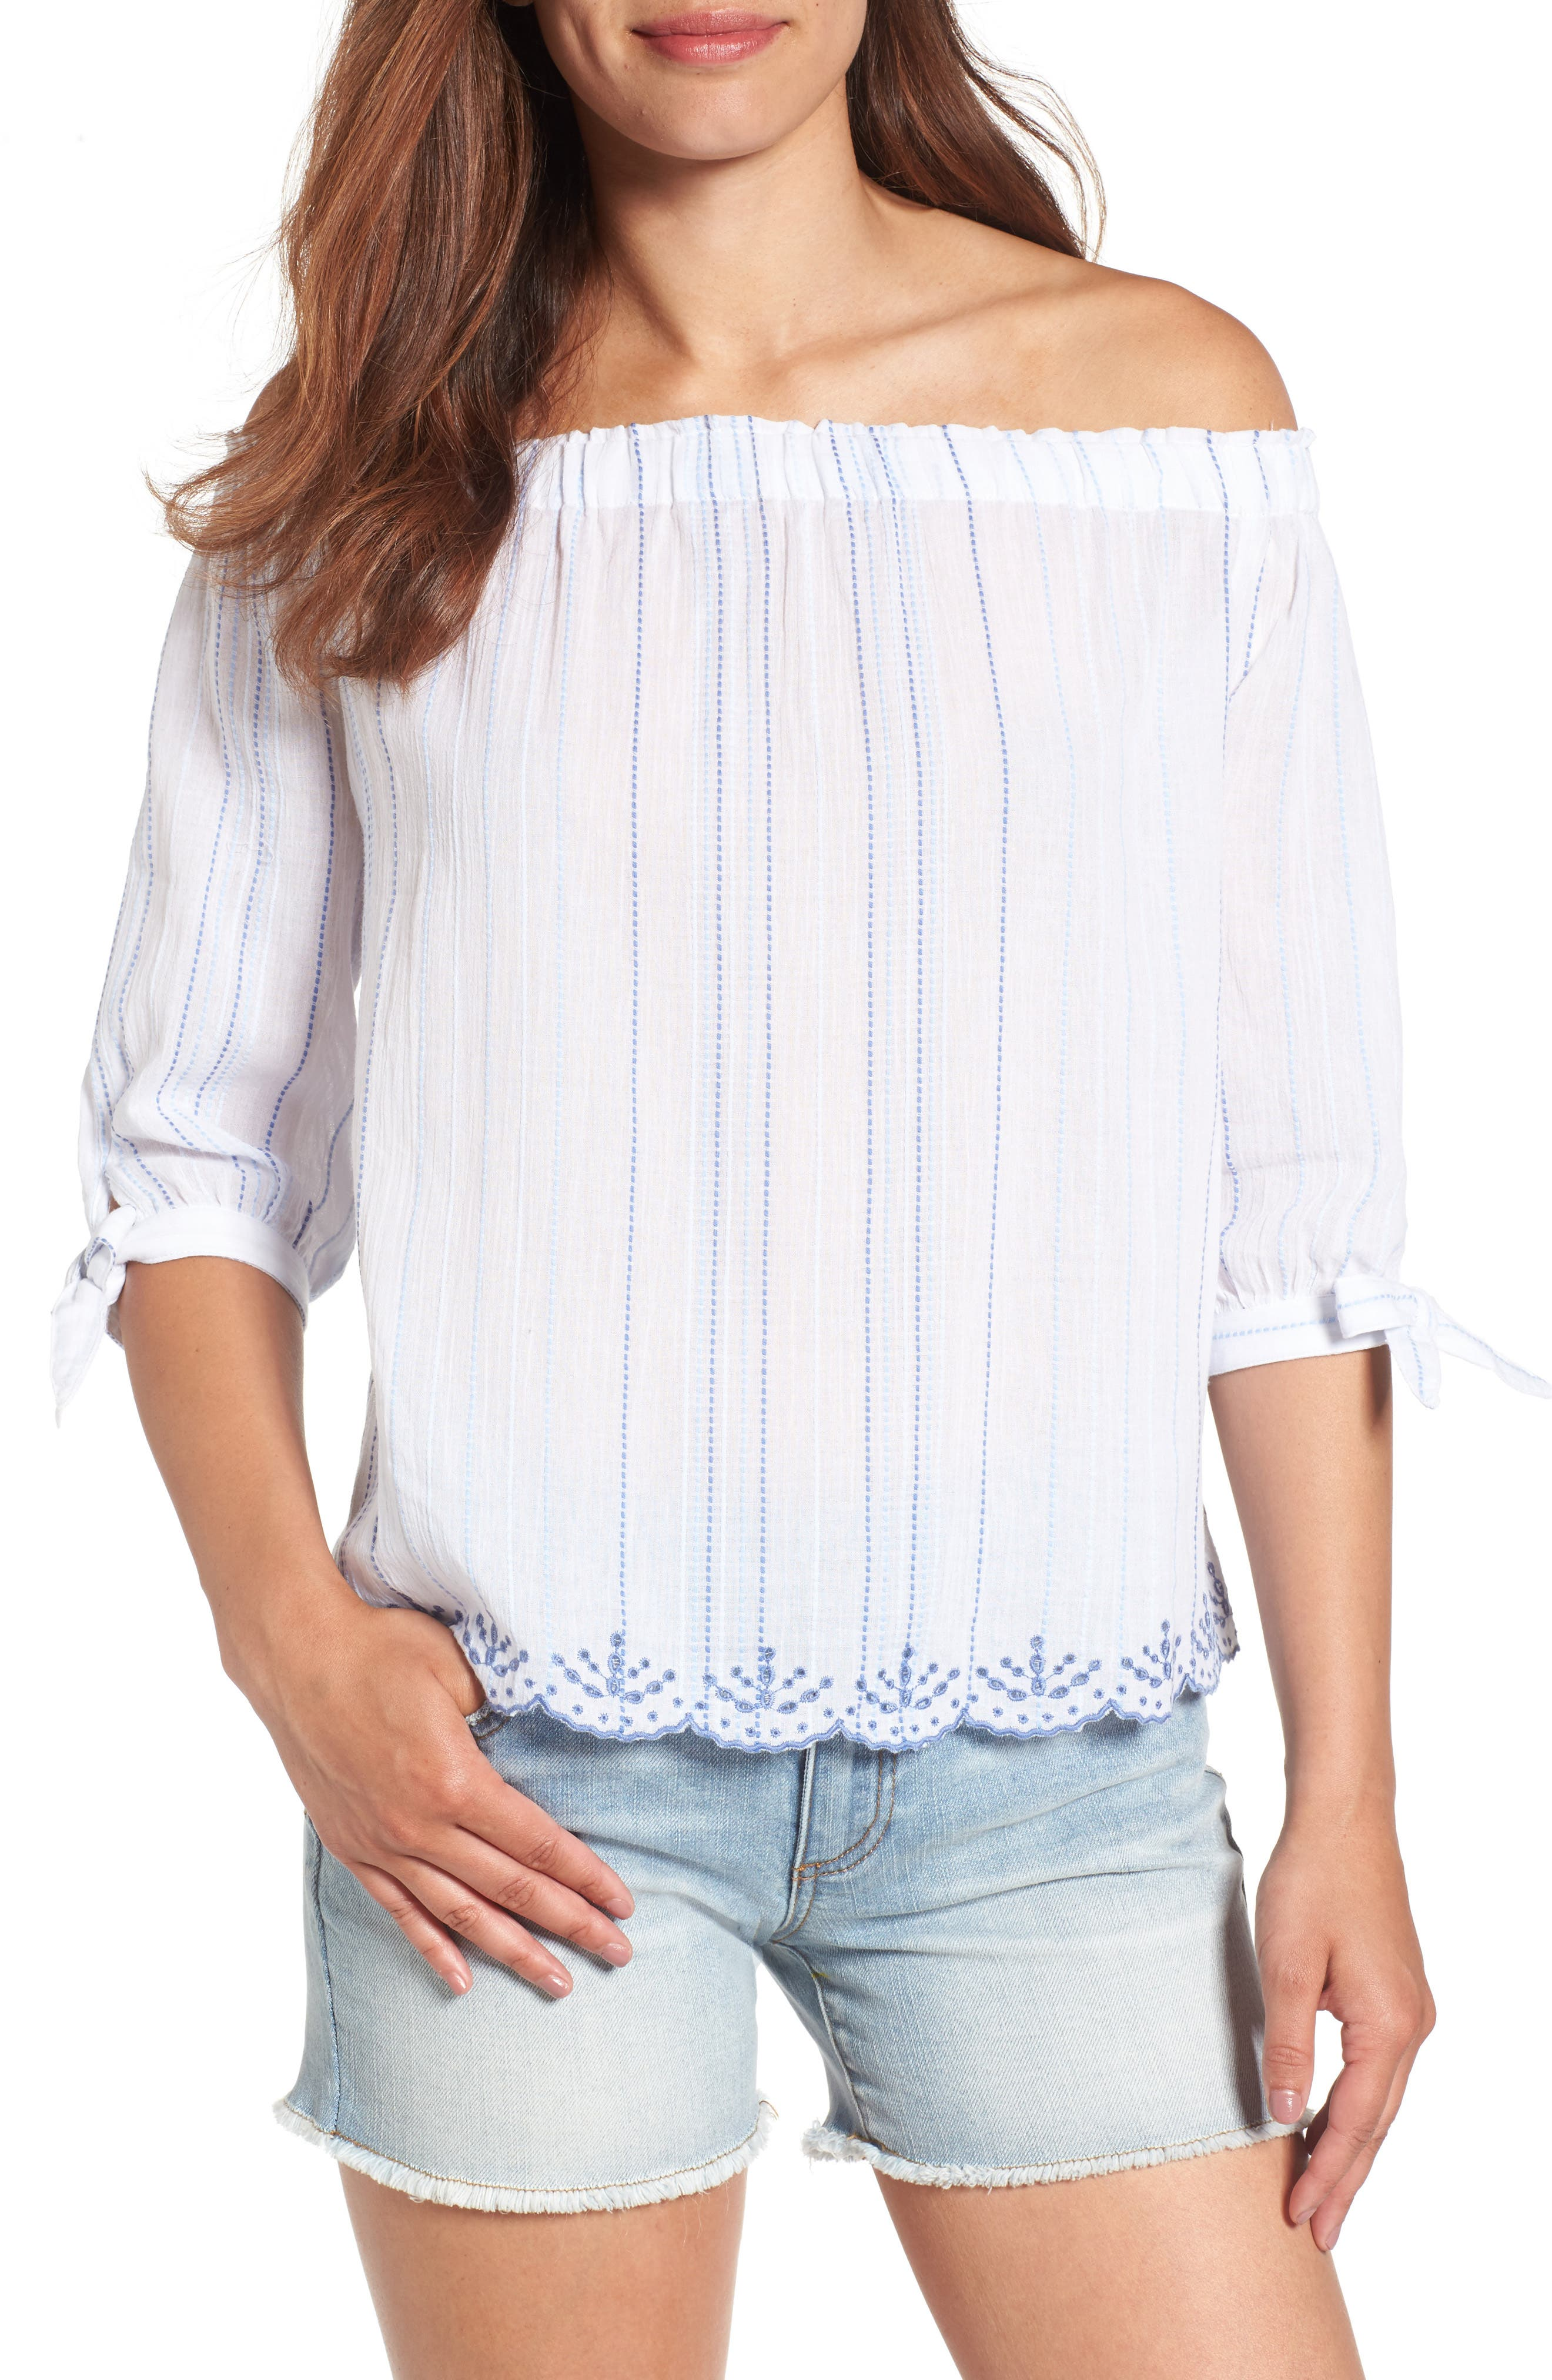 Alternate Image 1 Selected - Wit & Wisdom Off the Shoulder Top (Nordstrom Exclusive)